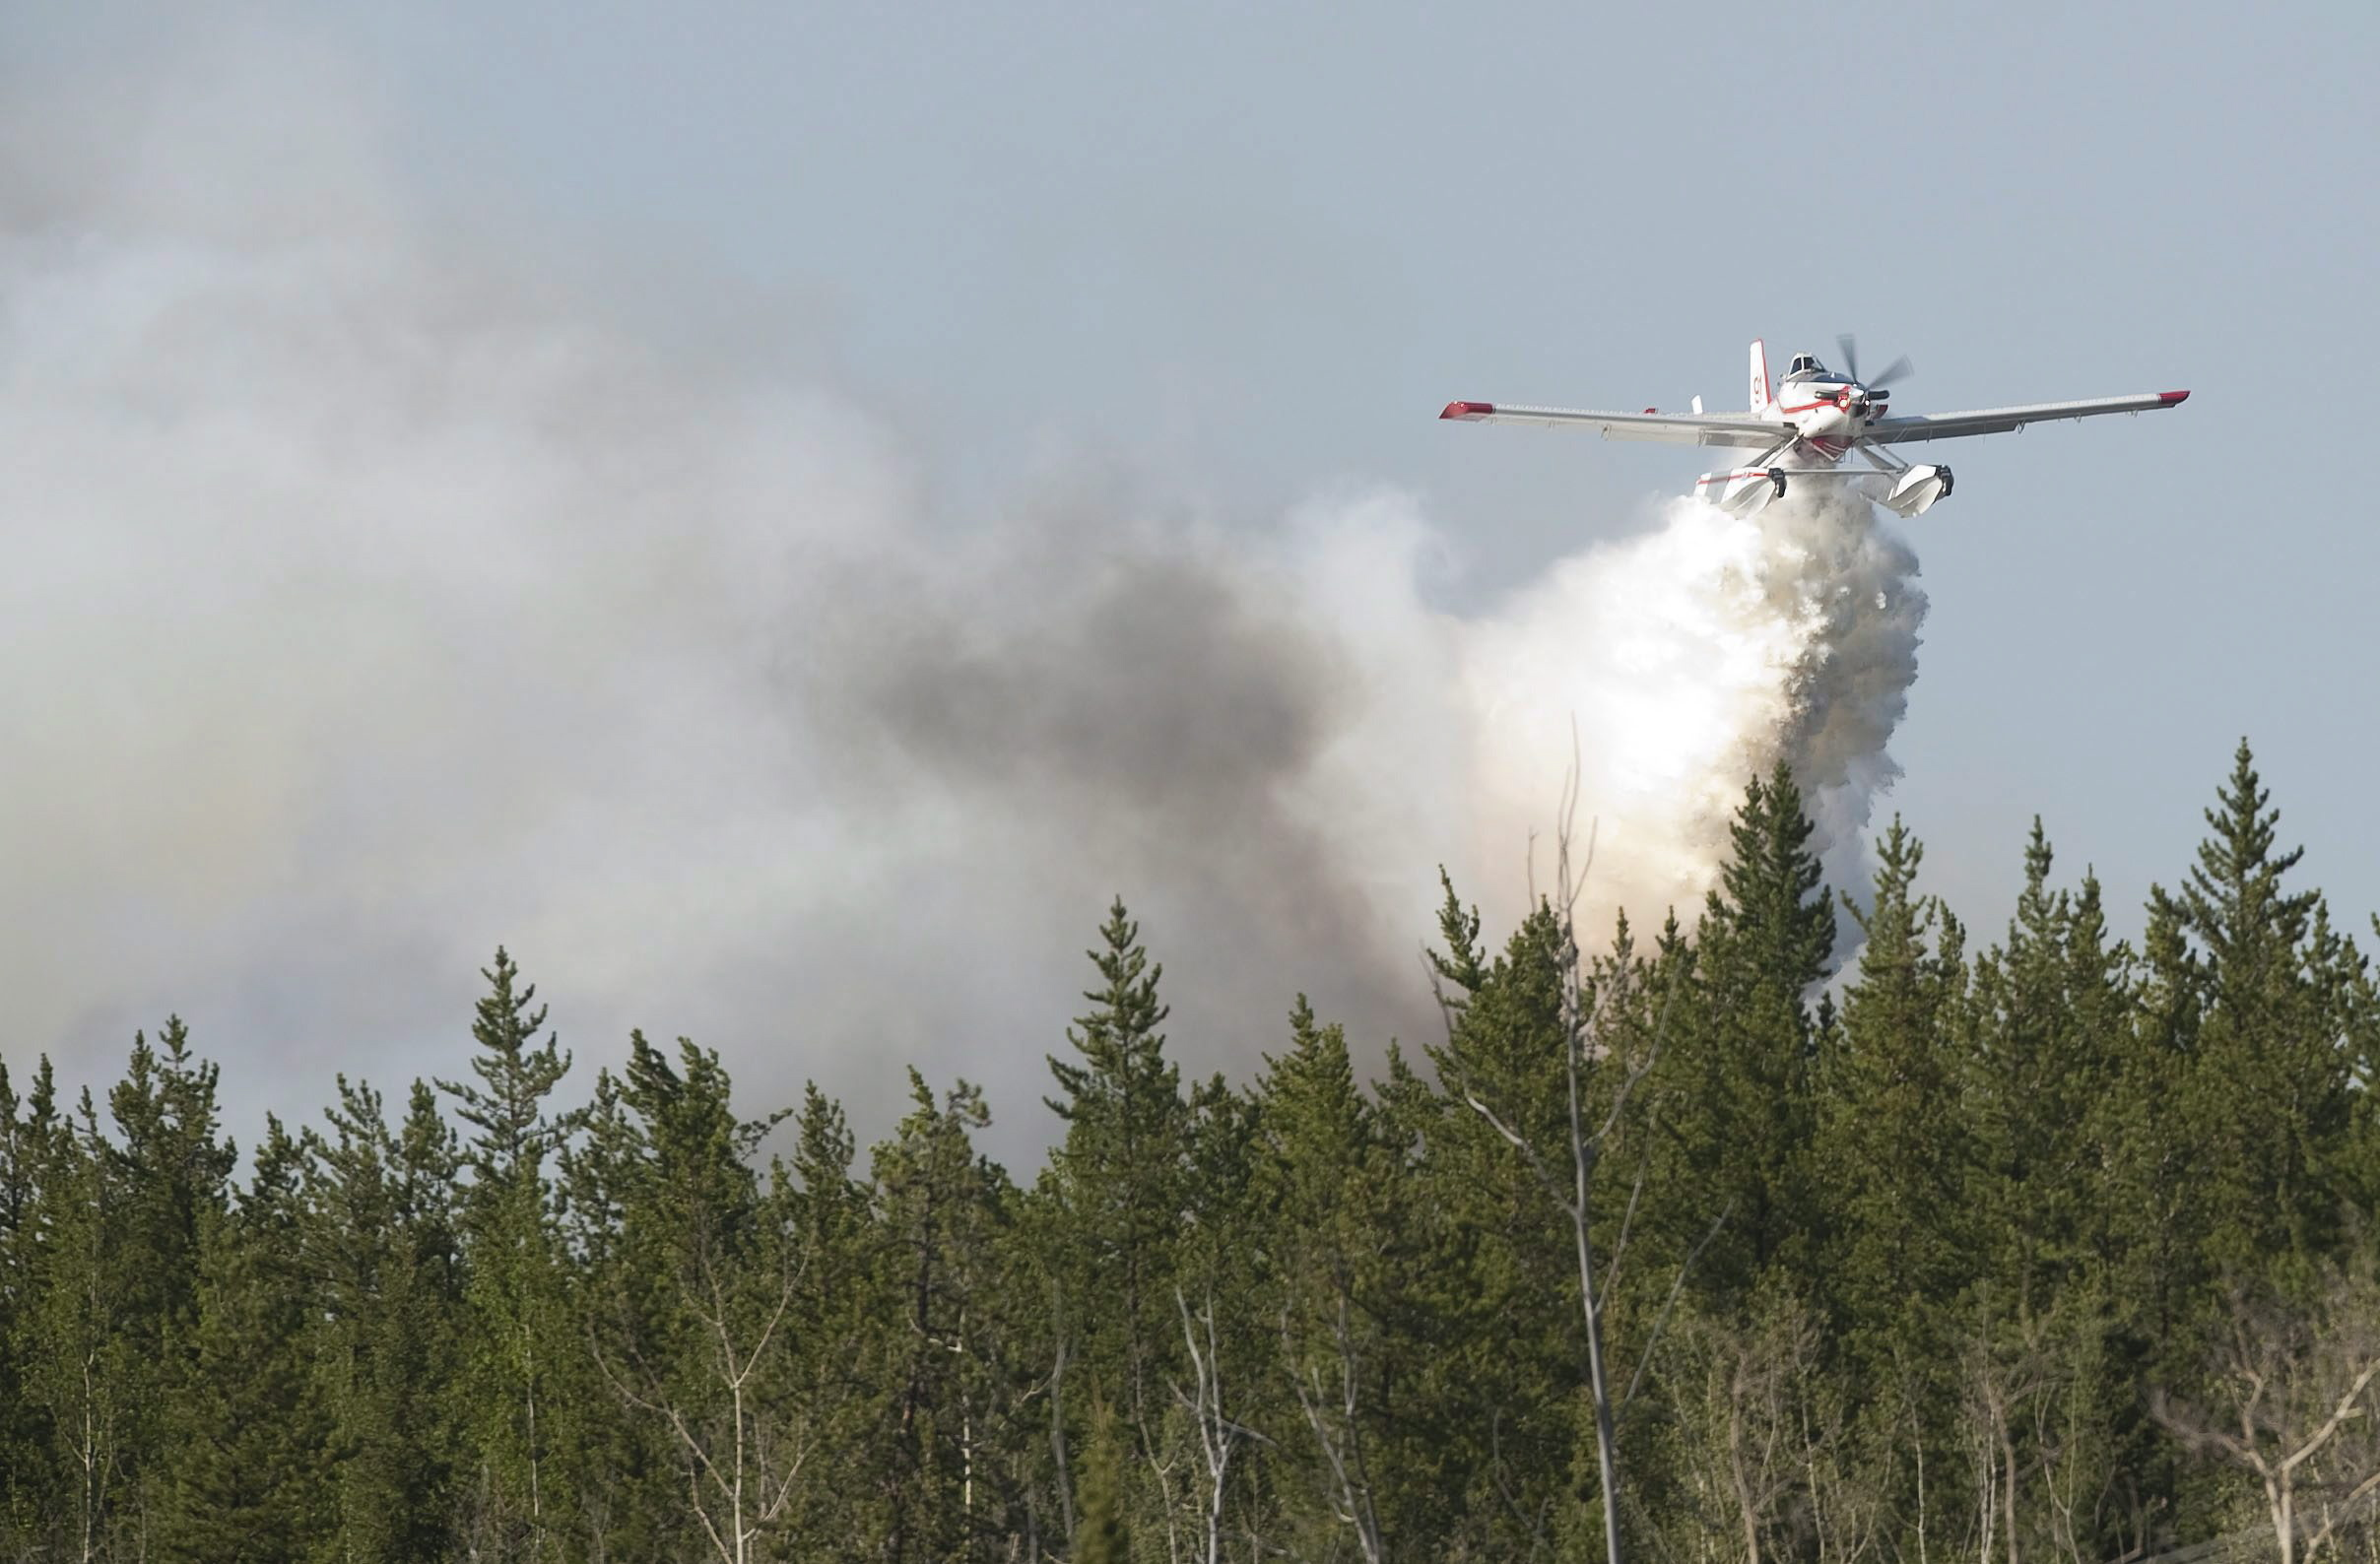 A water bomber drops its water on afire near Slave Lake, Alta. on May 15, 2011. More than 1,000 people were ordered to leave their homes when strong winds fanned two separate wildfires that burned on either side of the northern Alberta town. (Ian Jackson/The Canadian Press)